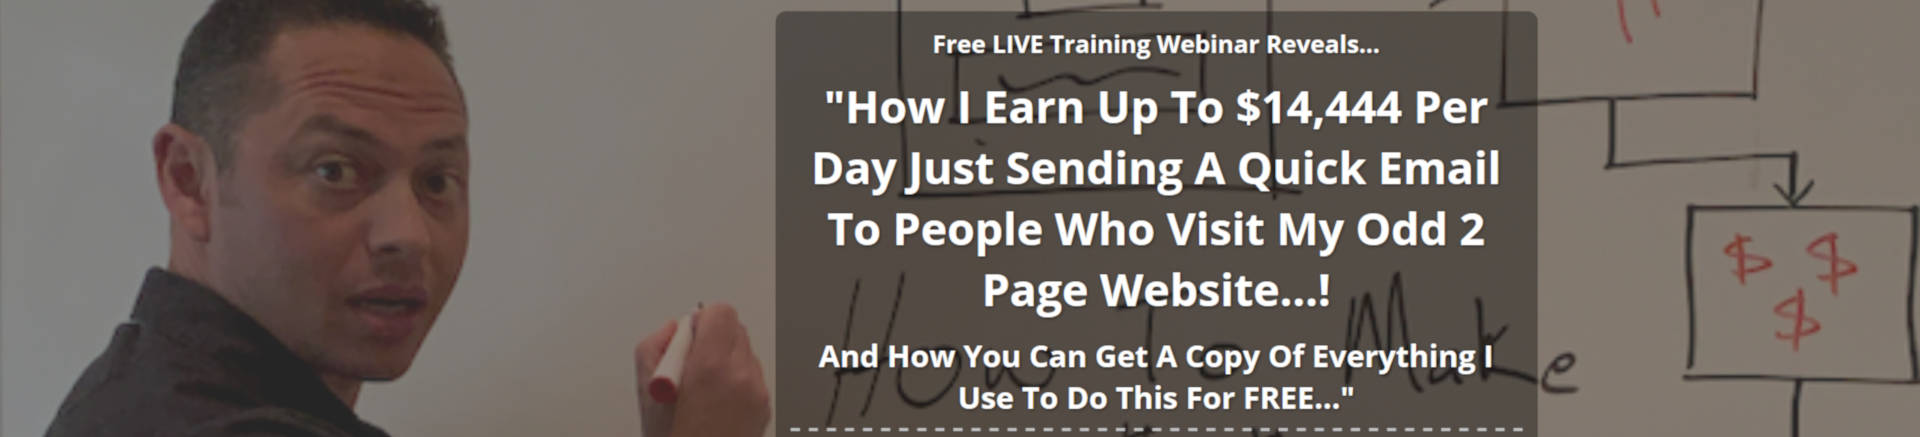 Buy Training Program 1k A Day Fast Track Sale Cheap